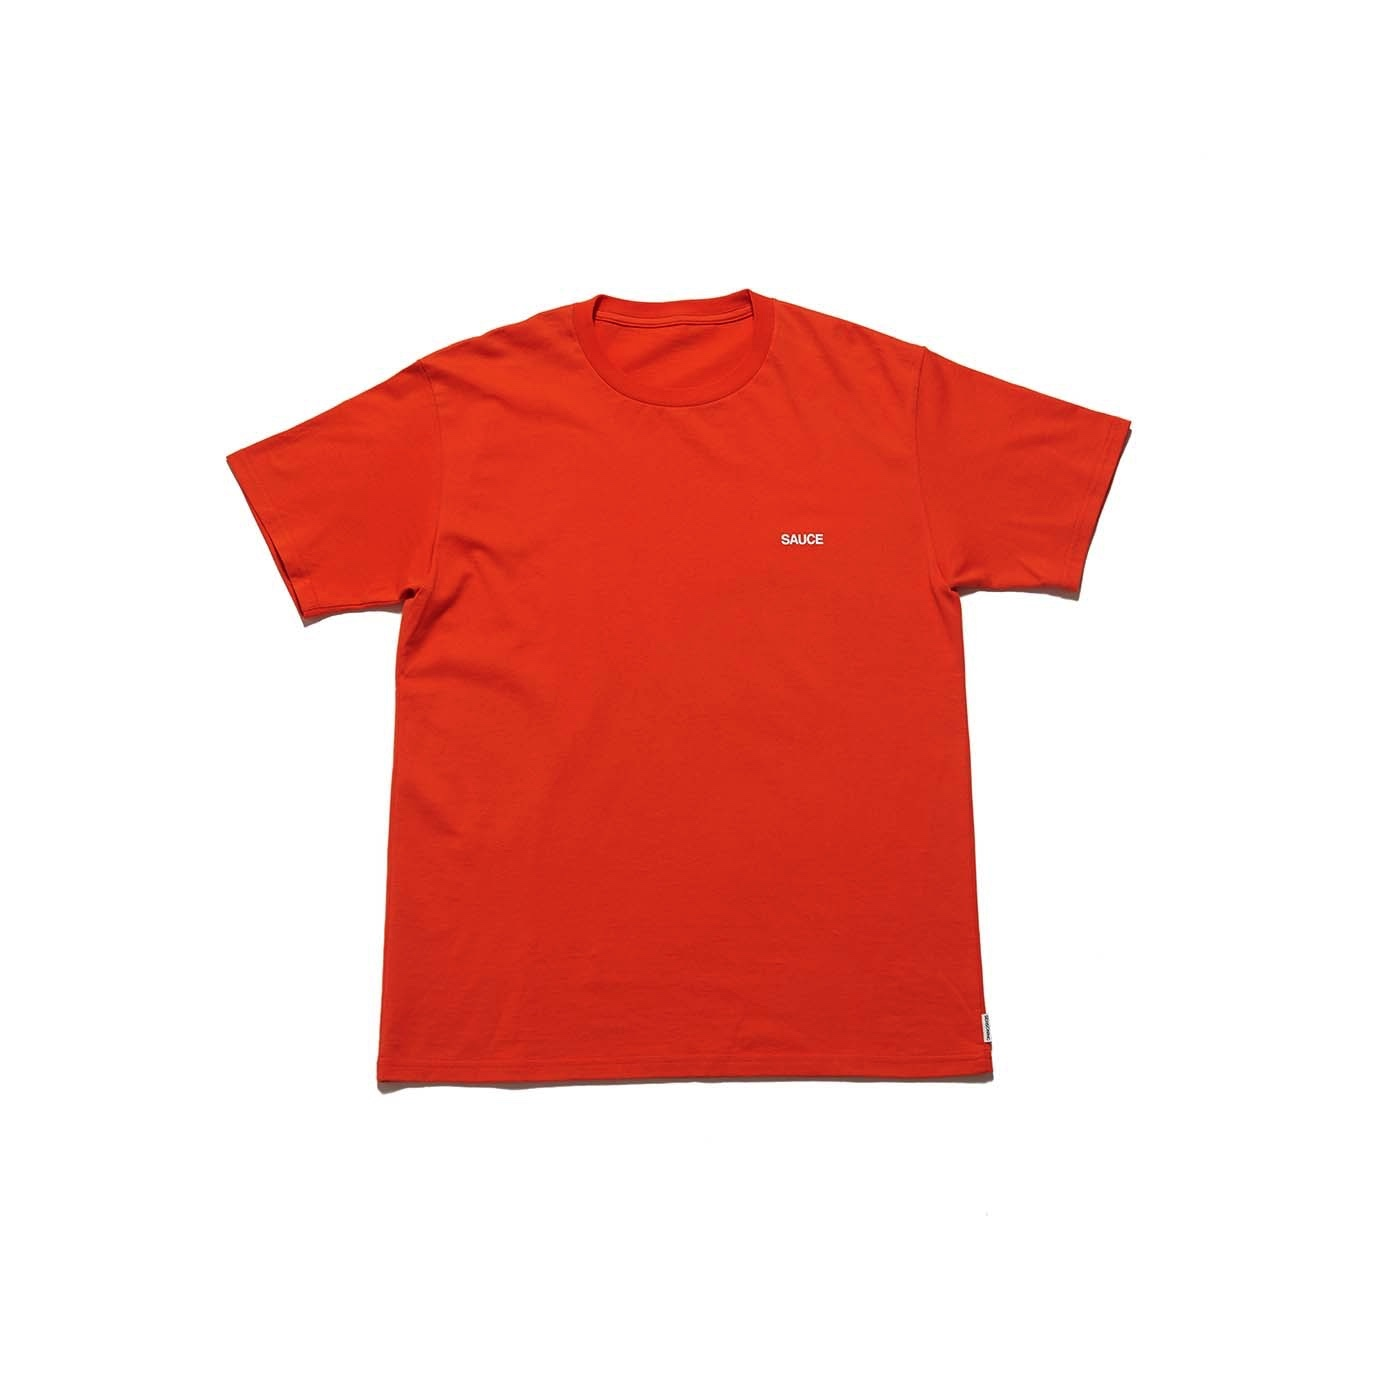 "SPICE COLOR TEE ""SAUCE"" -  ORANGE"